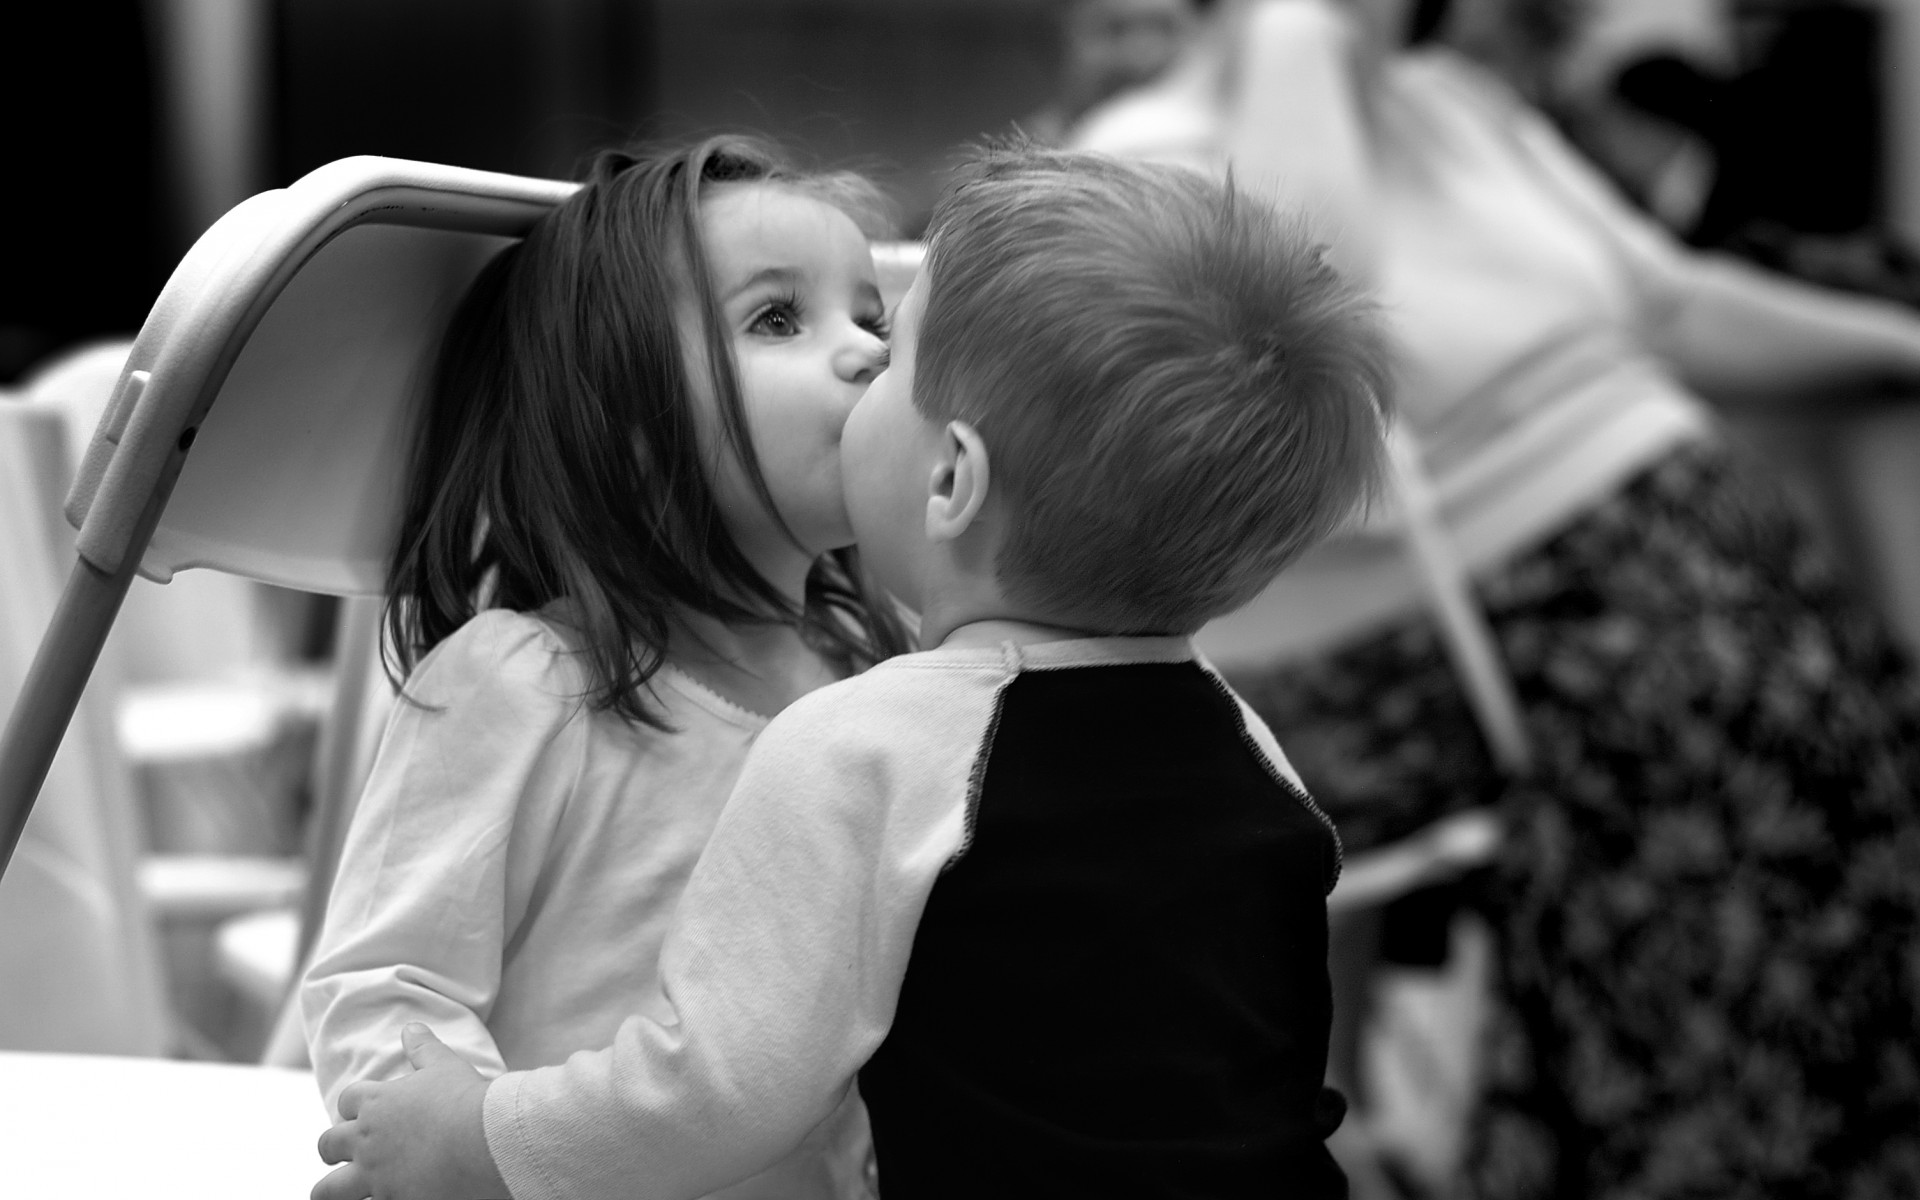 Love Wallpapers With Kiss : Love friends mood children kids black white bw kiss cute wallpaper 1920x1200 35563 WallpaperUP